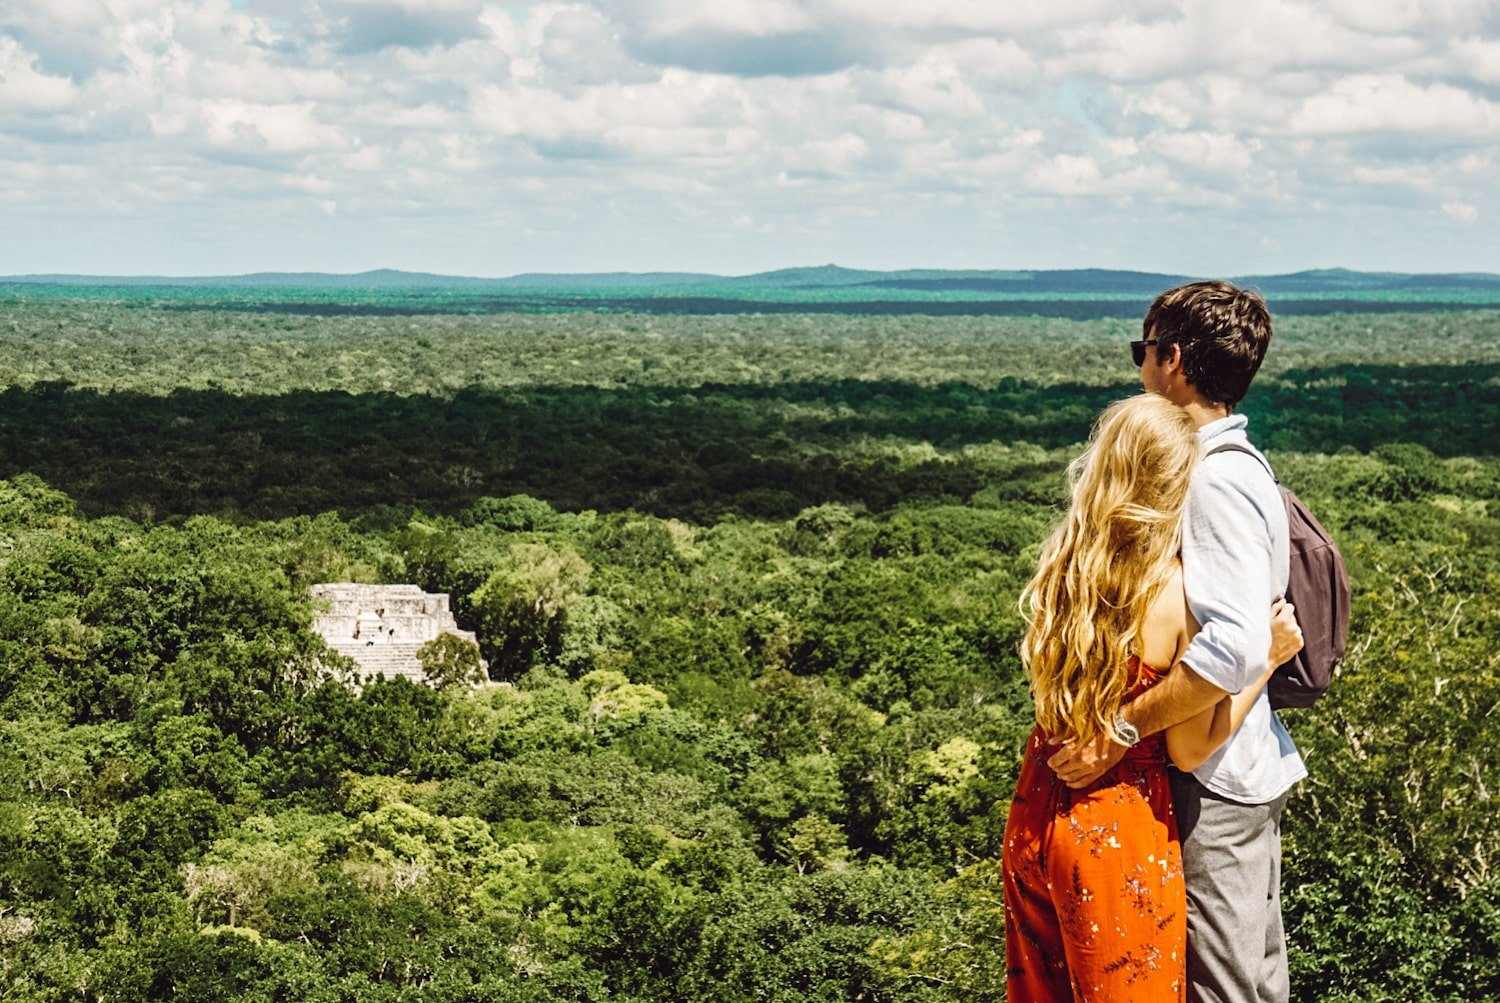 couple overlooking Calakmul mayan ruins in Campeche, Mexico